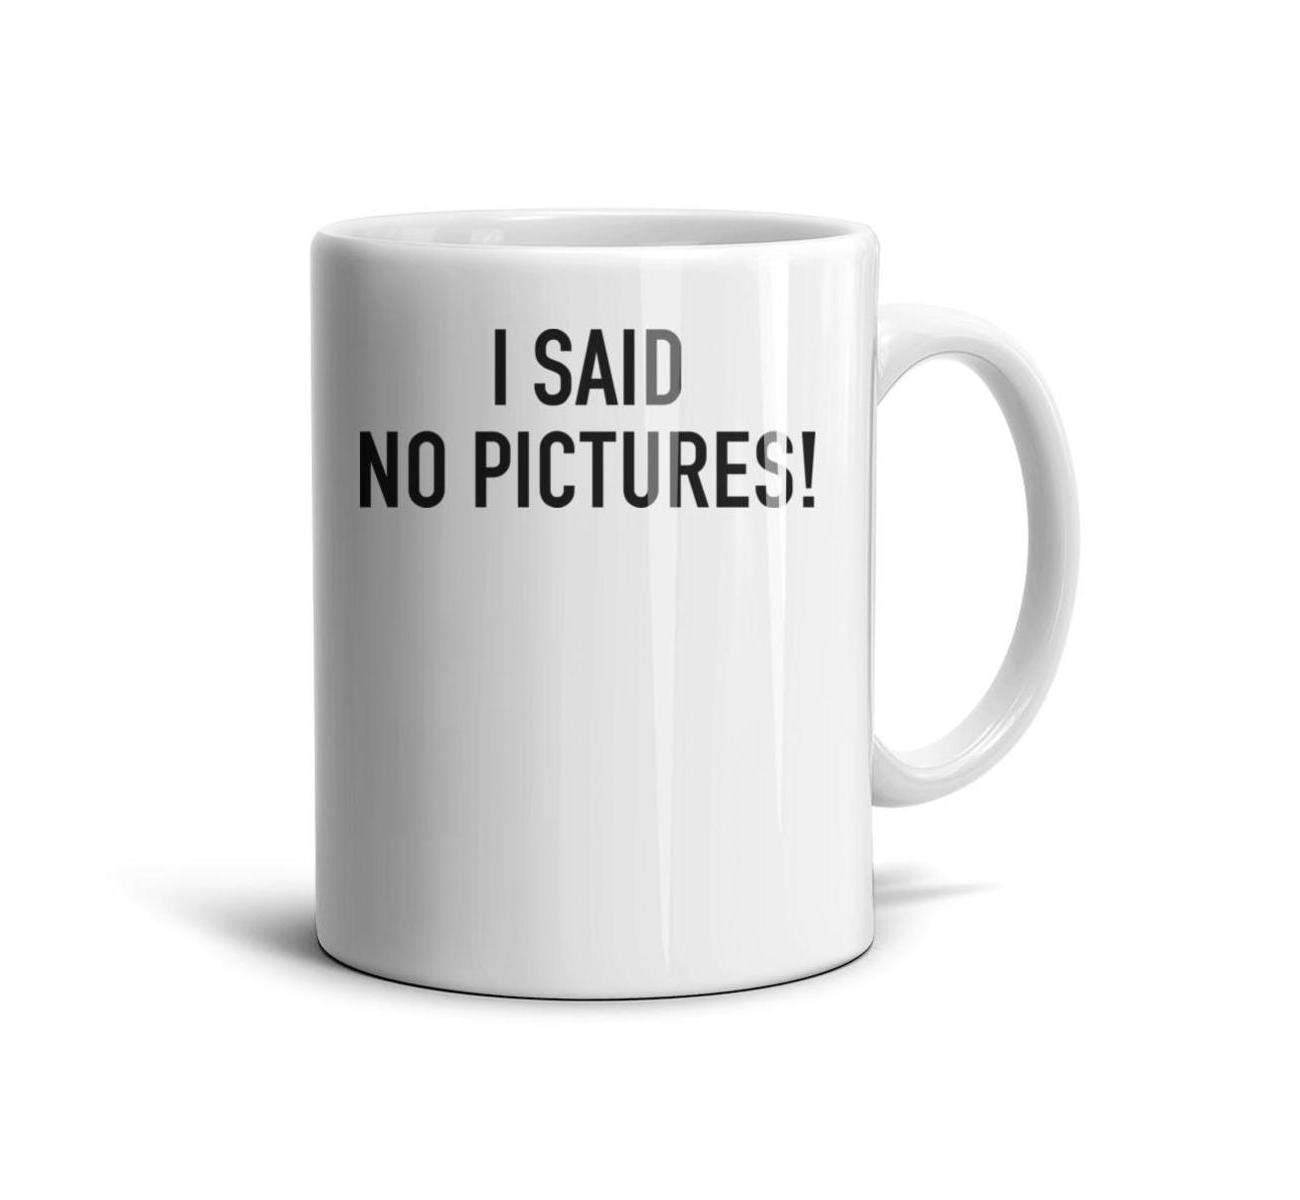 devrrssx I Said no Pictures! Cool Mugs Great Gift 1 Set for Office and Home for sonMaximum Capacity 13.5oz